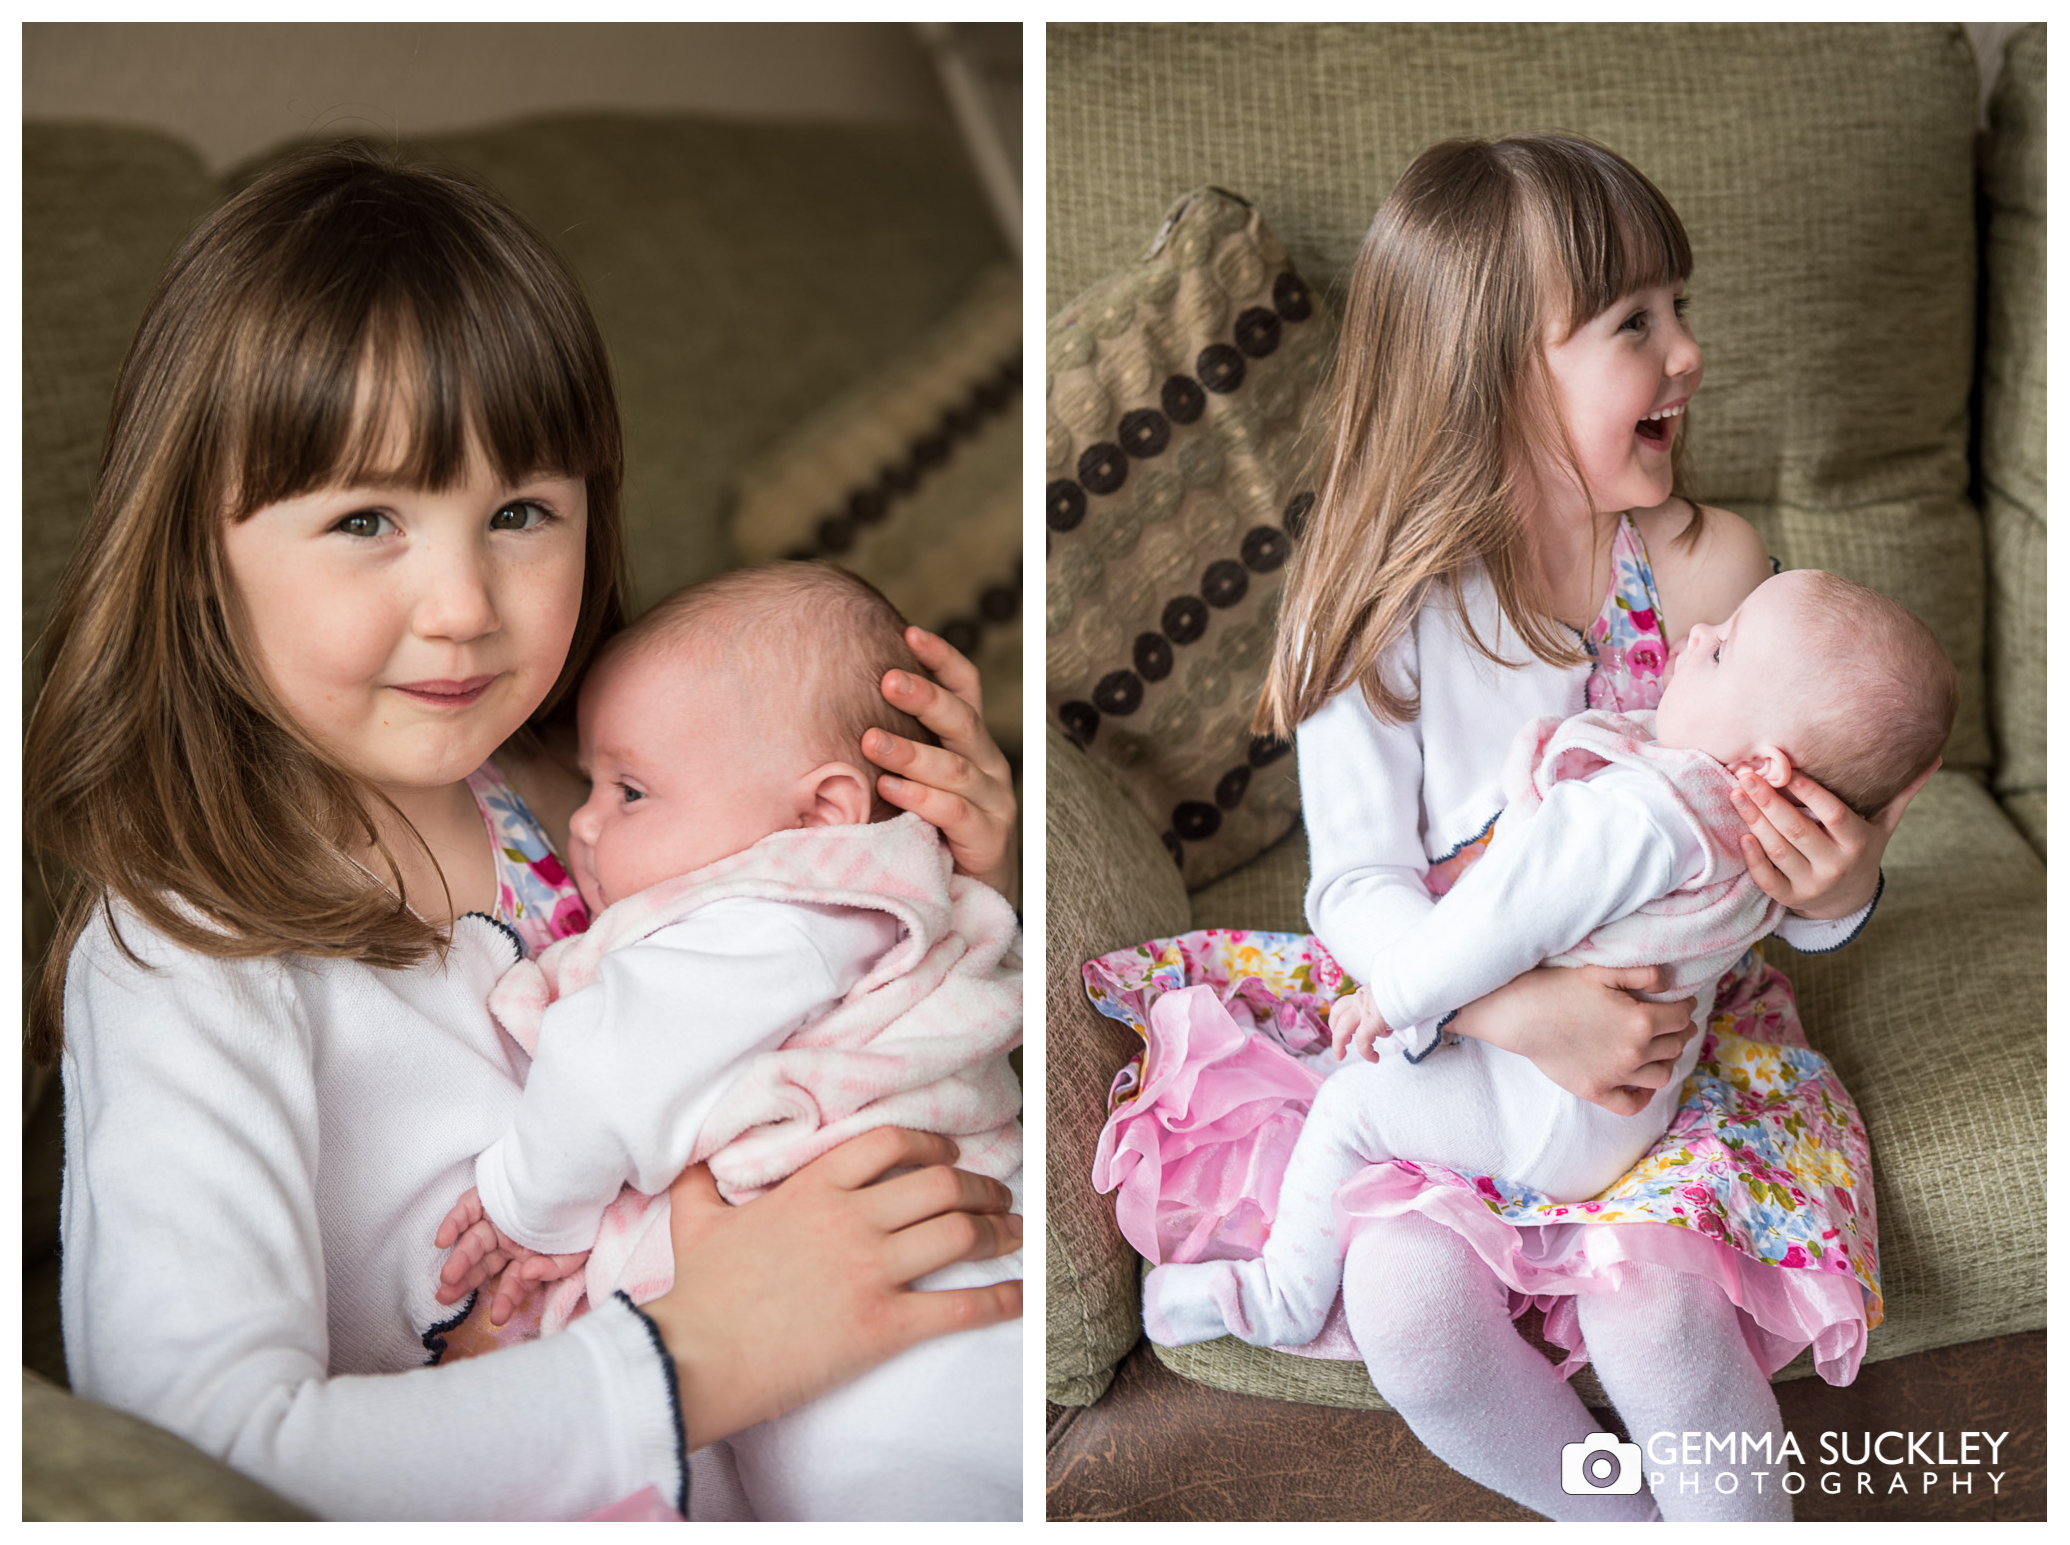 a photo of a little girl and her little baby sister